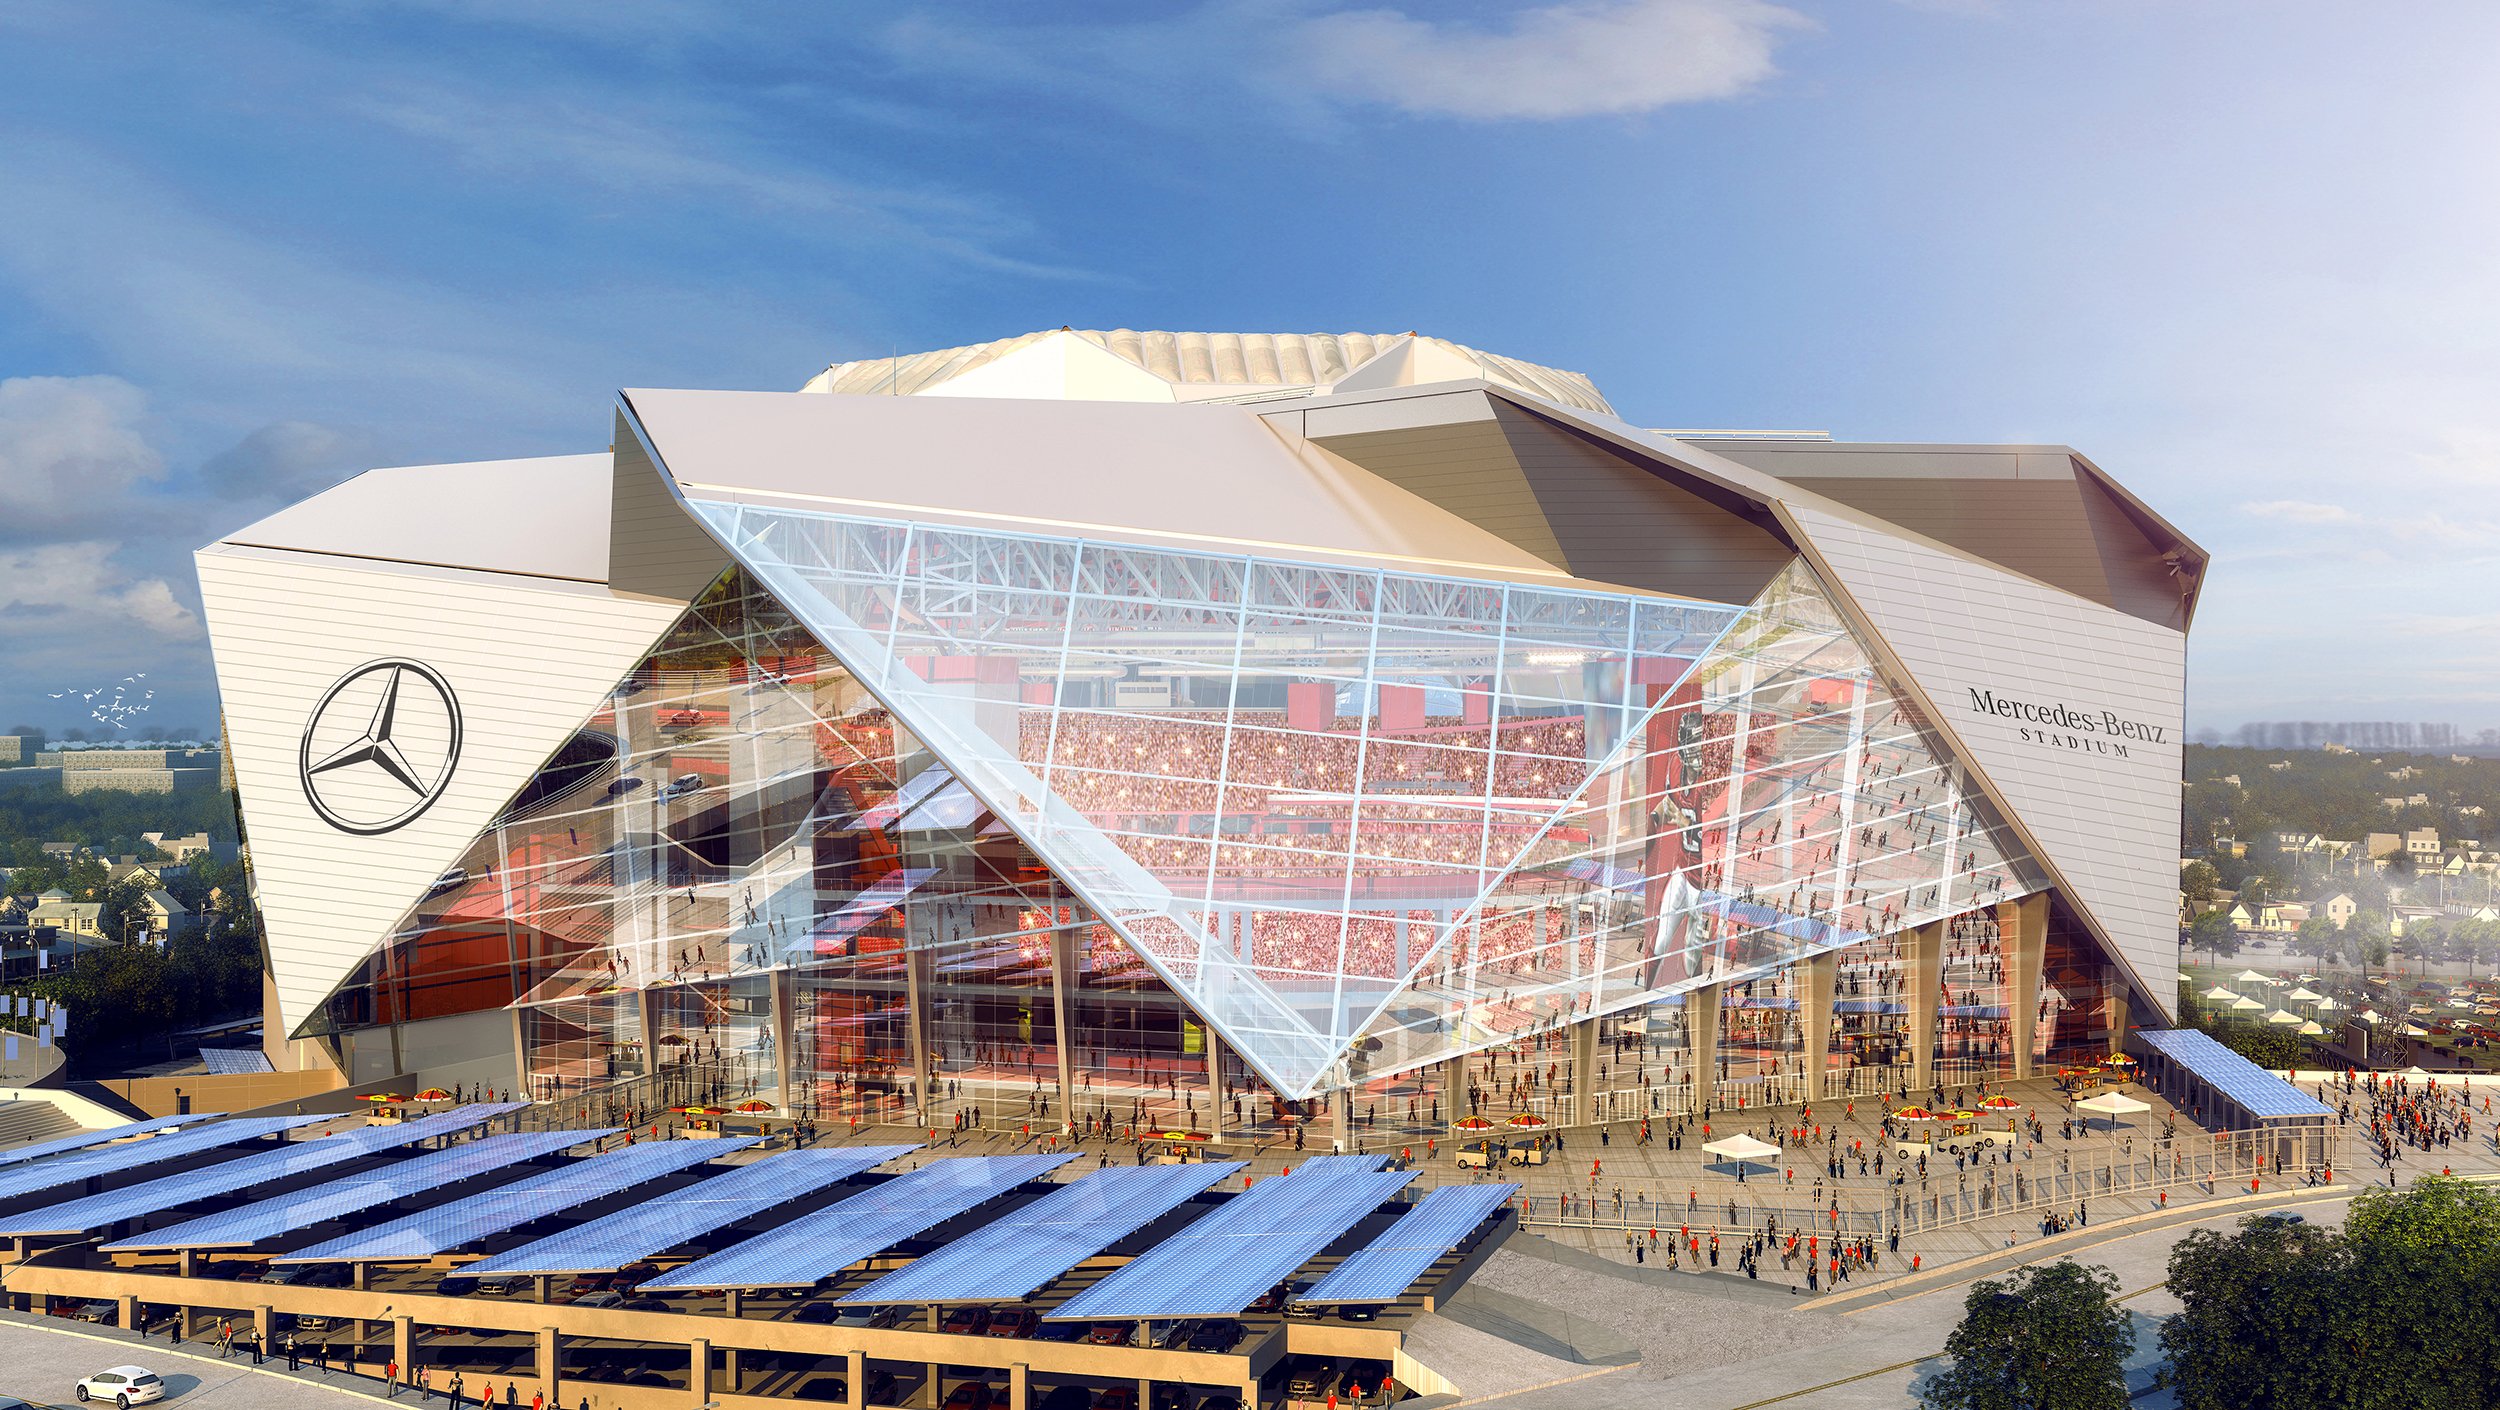 A bright future awaits georgia world congress center authority a retractable roof stadium will be home to super bowl liii gumiabroncs Image collections